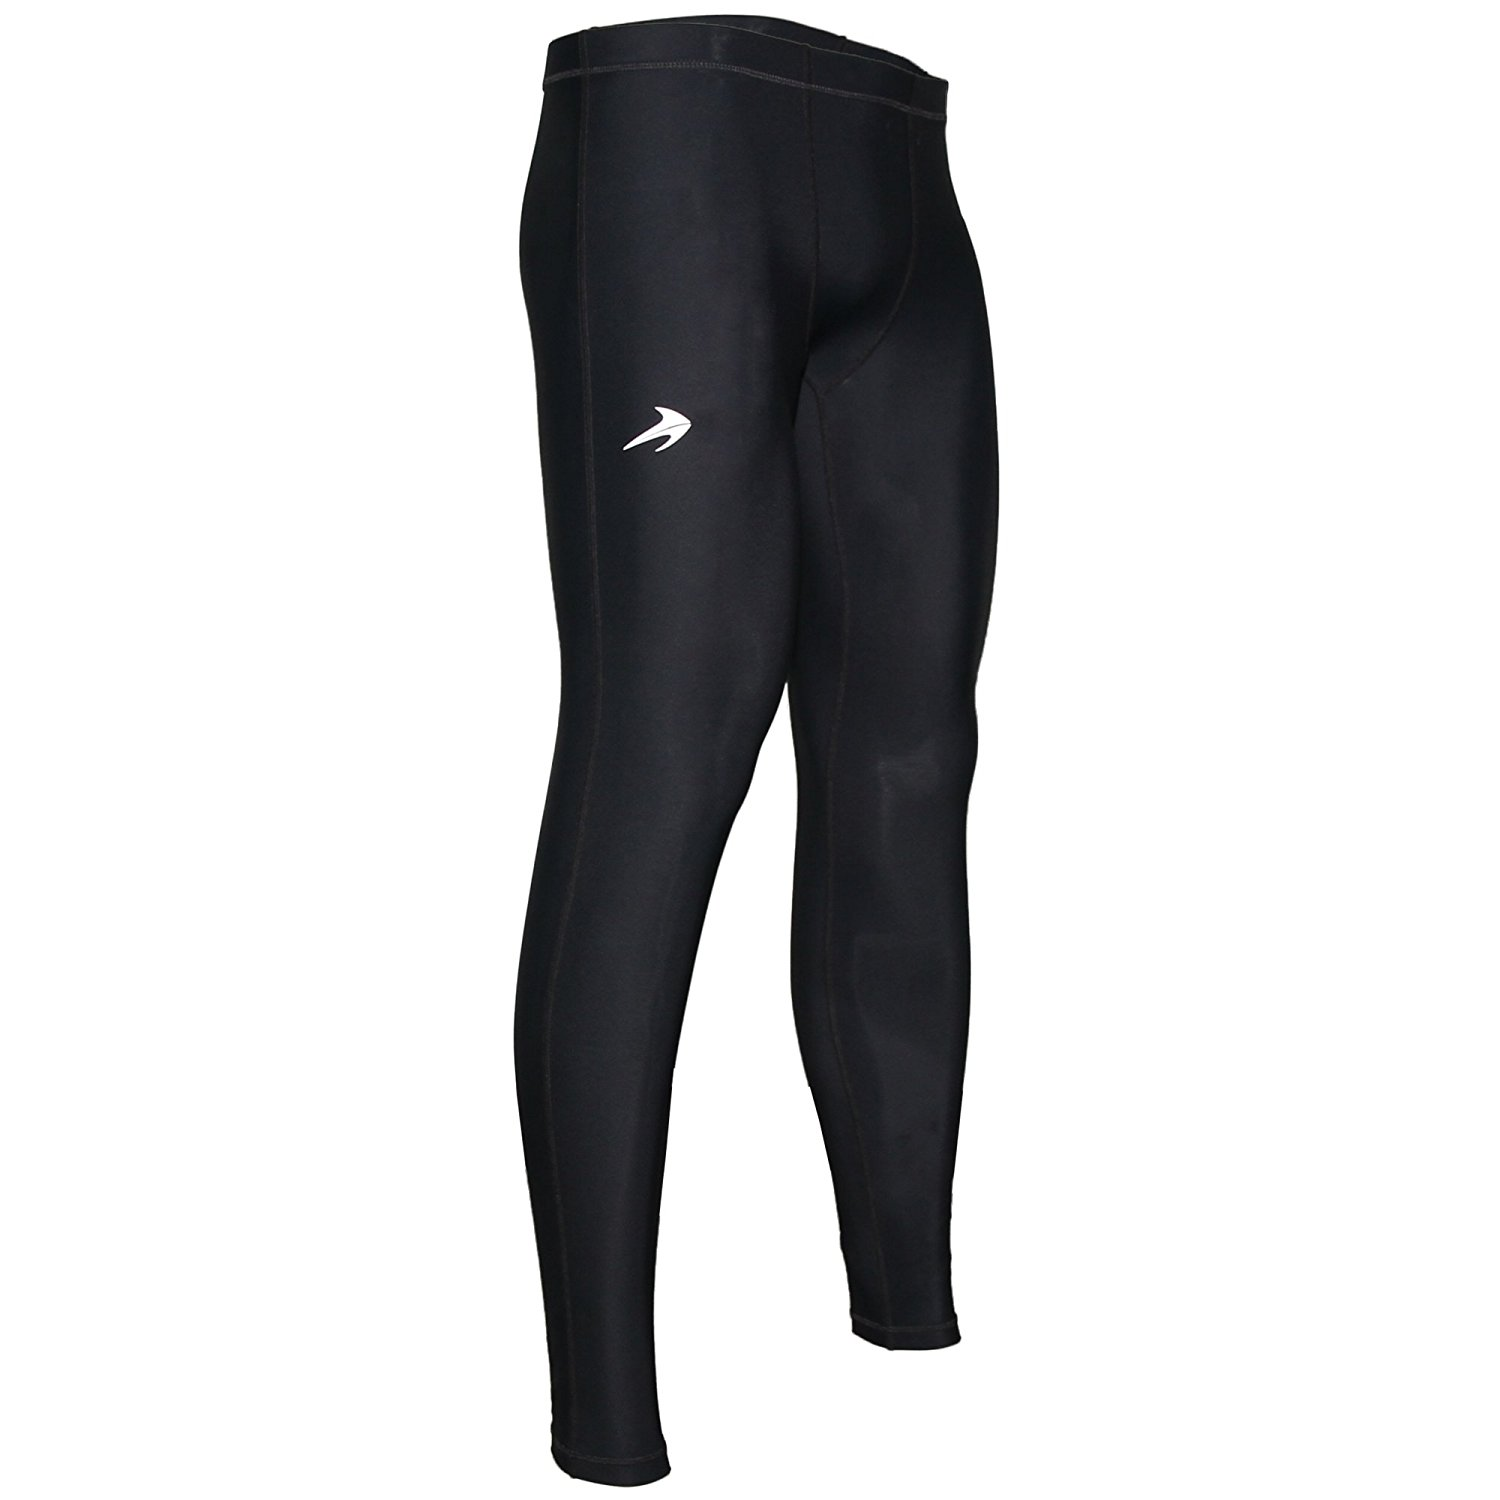 mens tight base layers compression leggings image